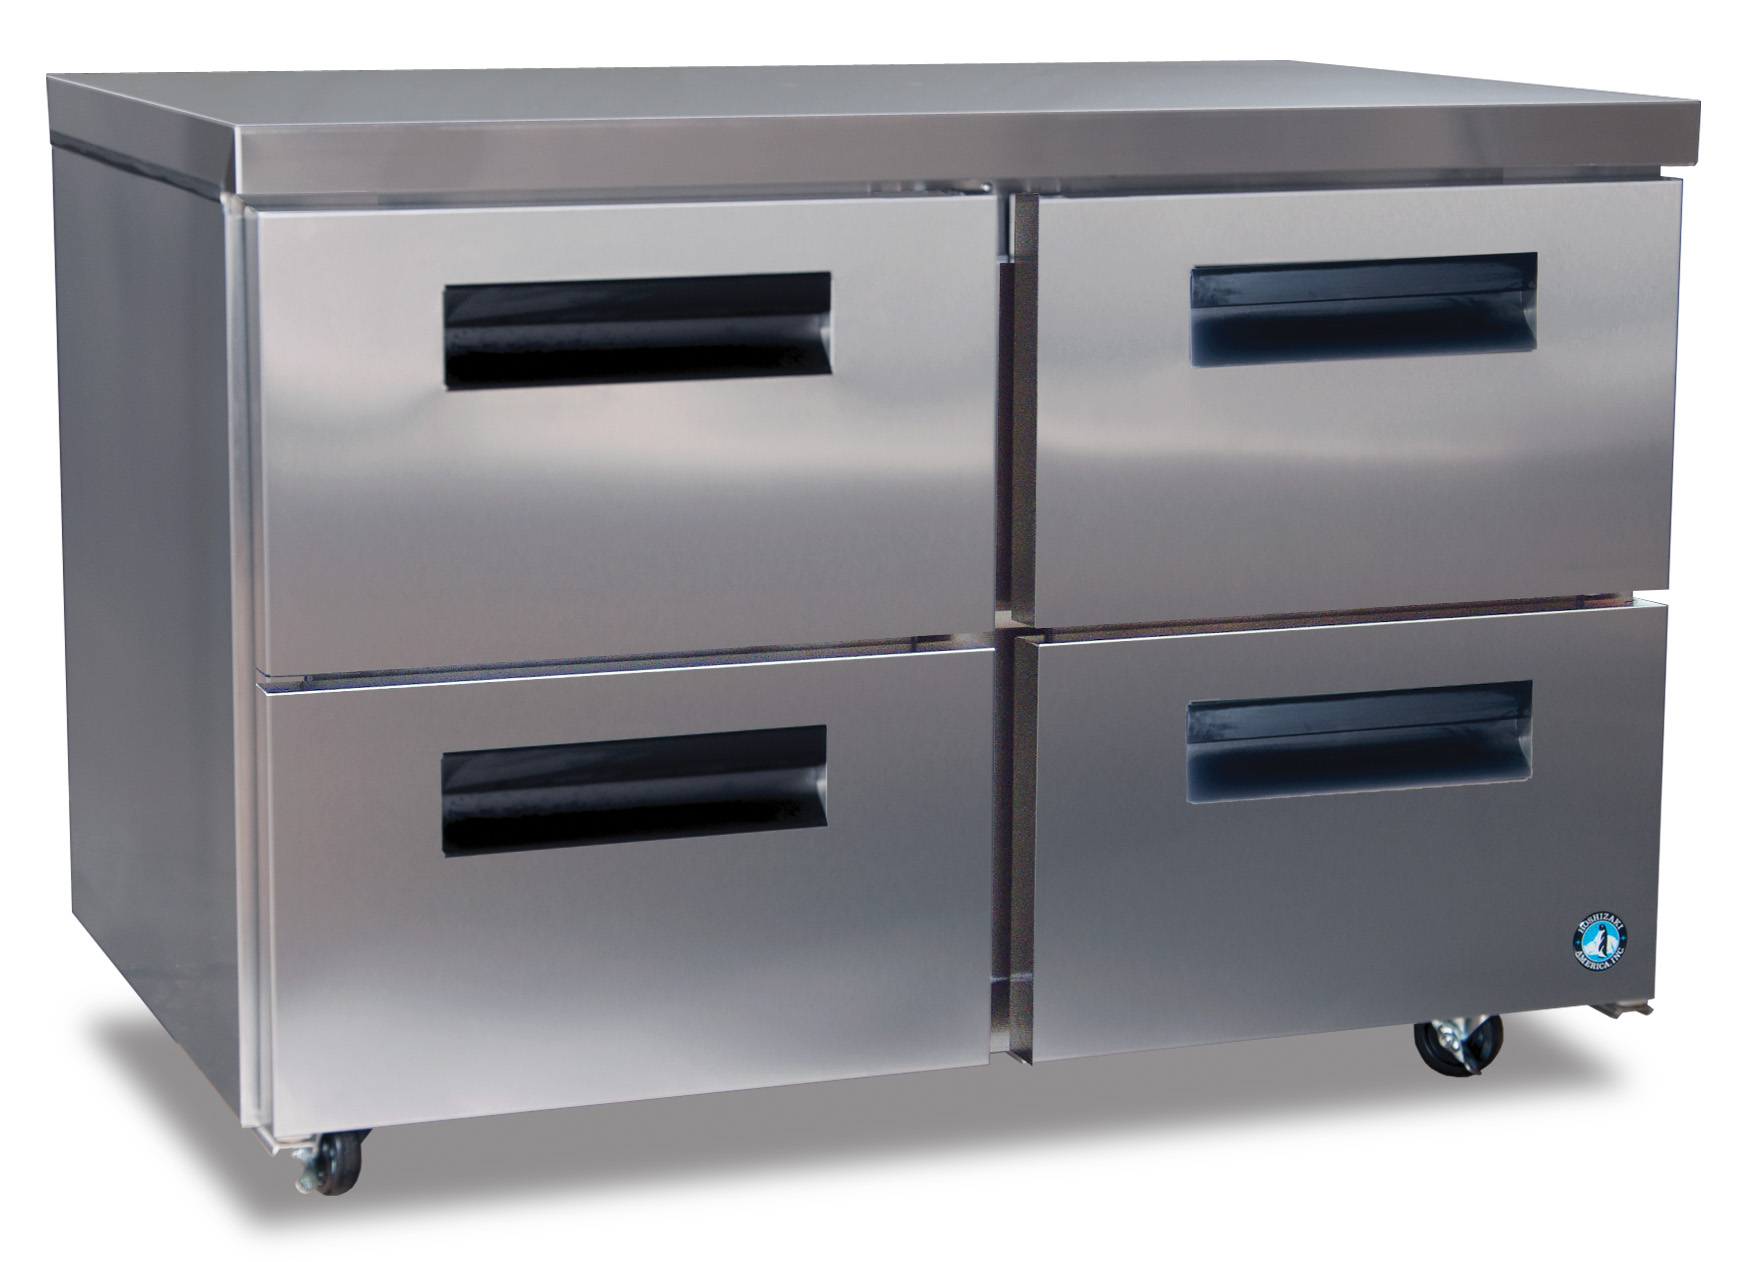 Hoshizaki CRMF48 D4, Freezer, Two Section Undercounter With Drawers